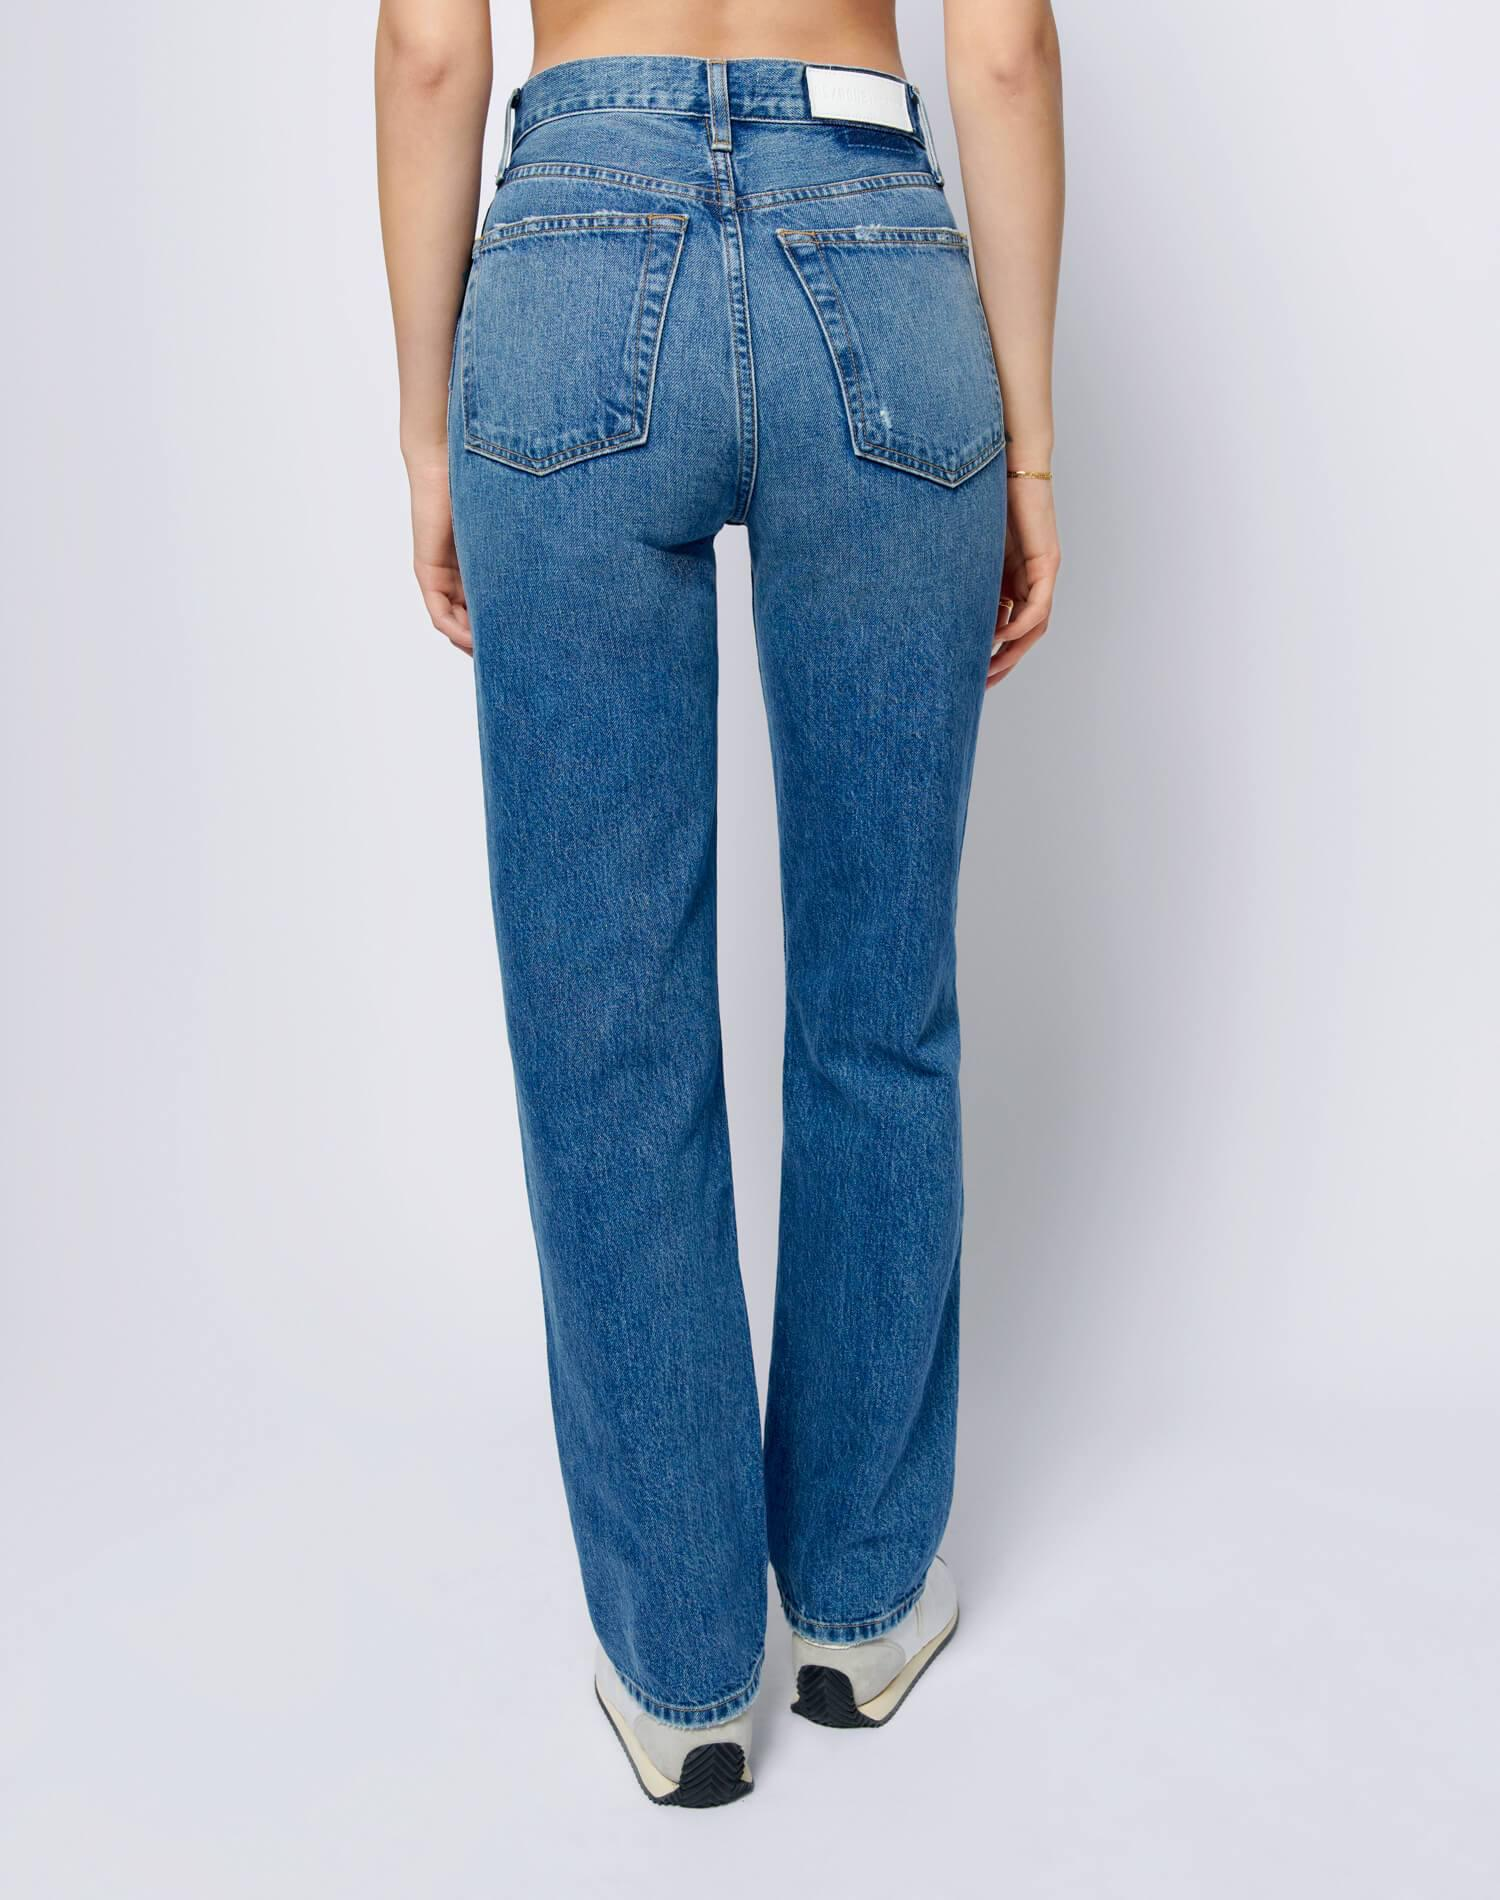 High Rise Loose - Washed Indigo with Rips 3